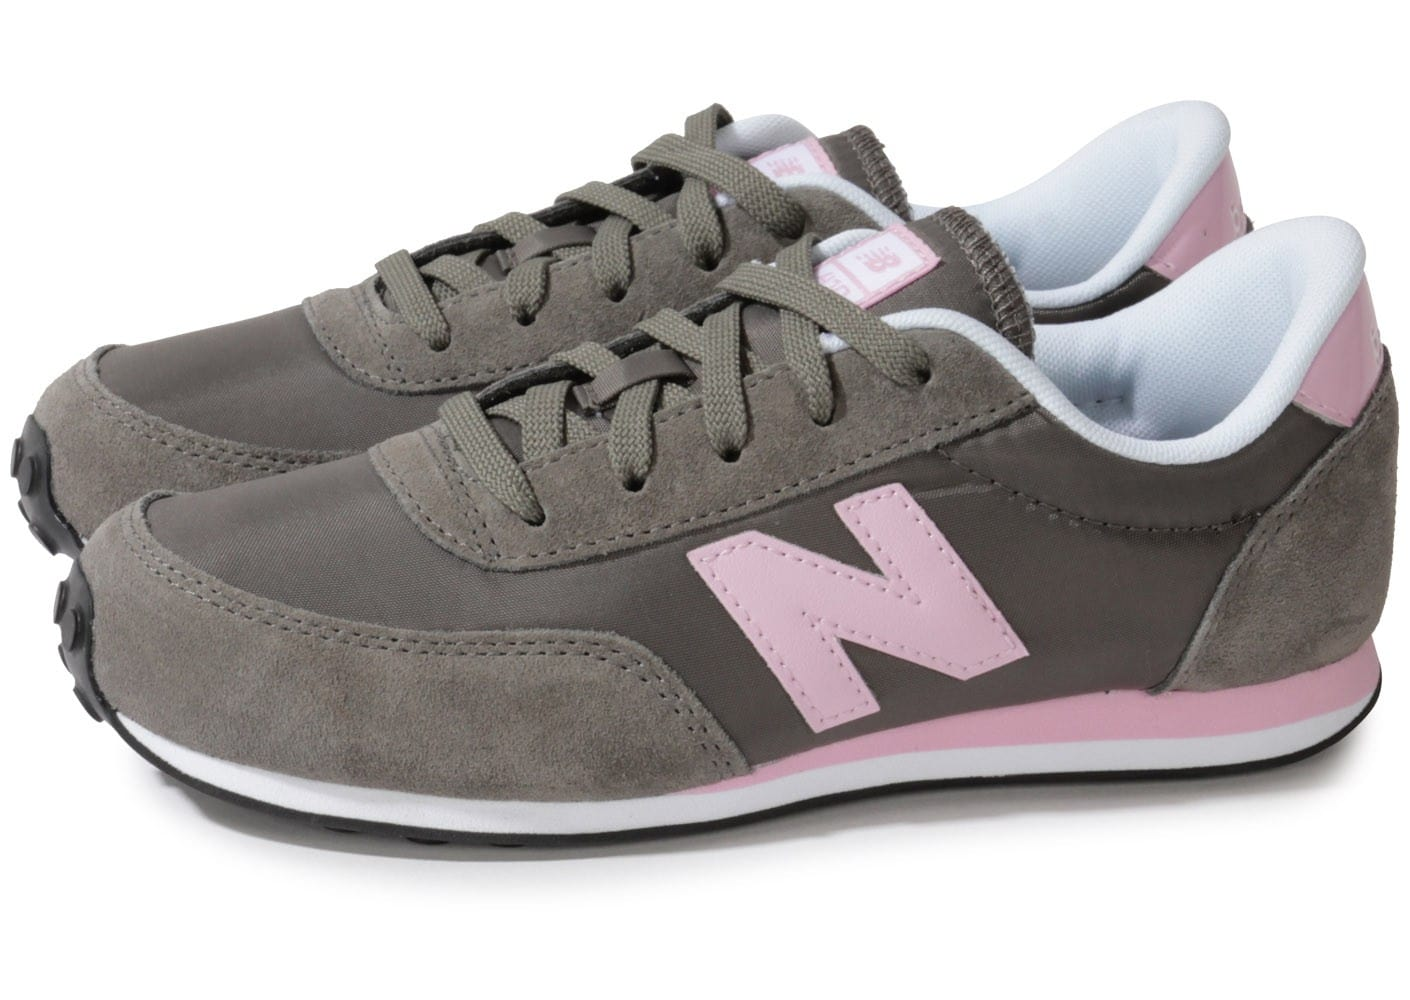 Et Chaussures New Grise Junior Balance Kl410 Rose 7Oq6f